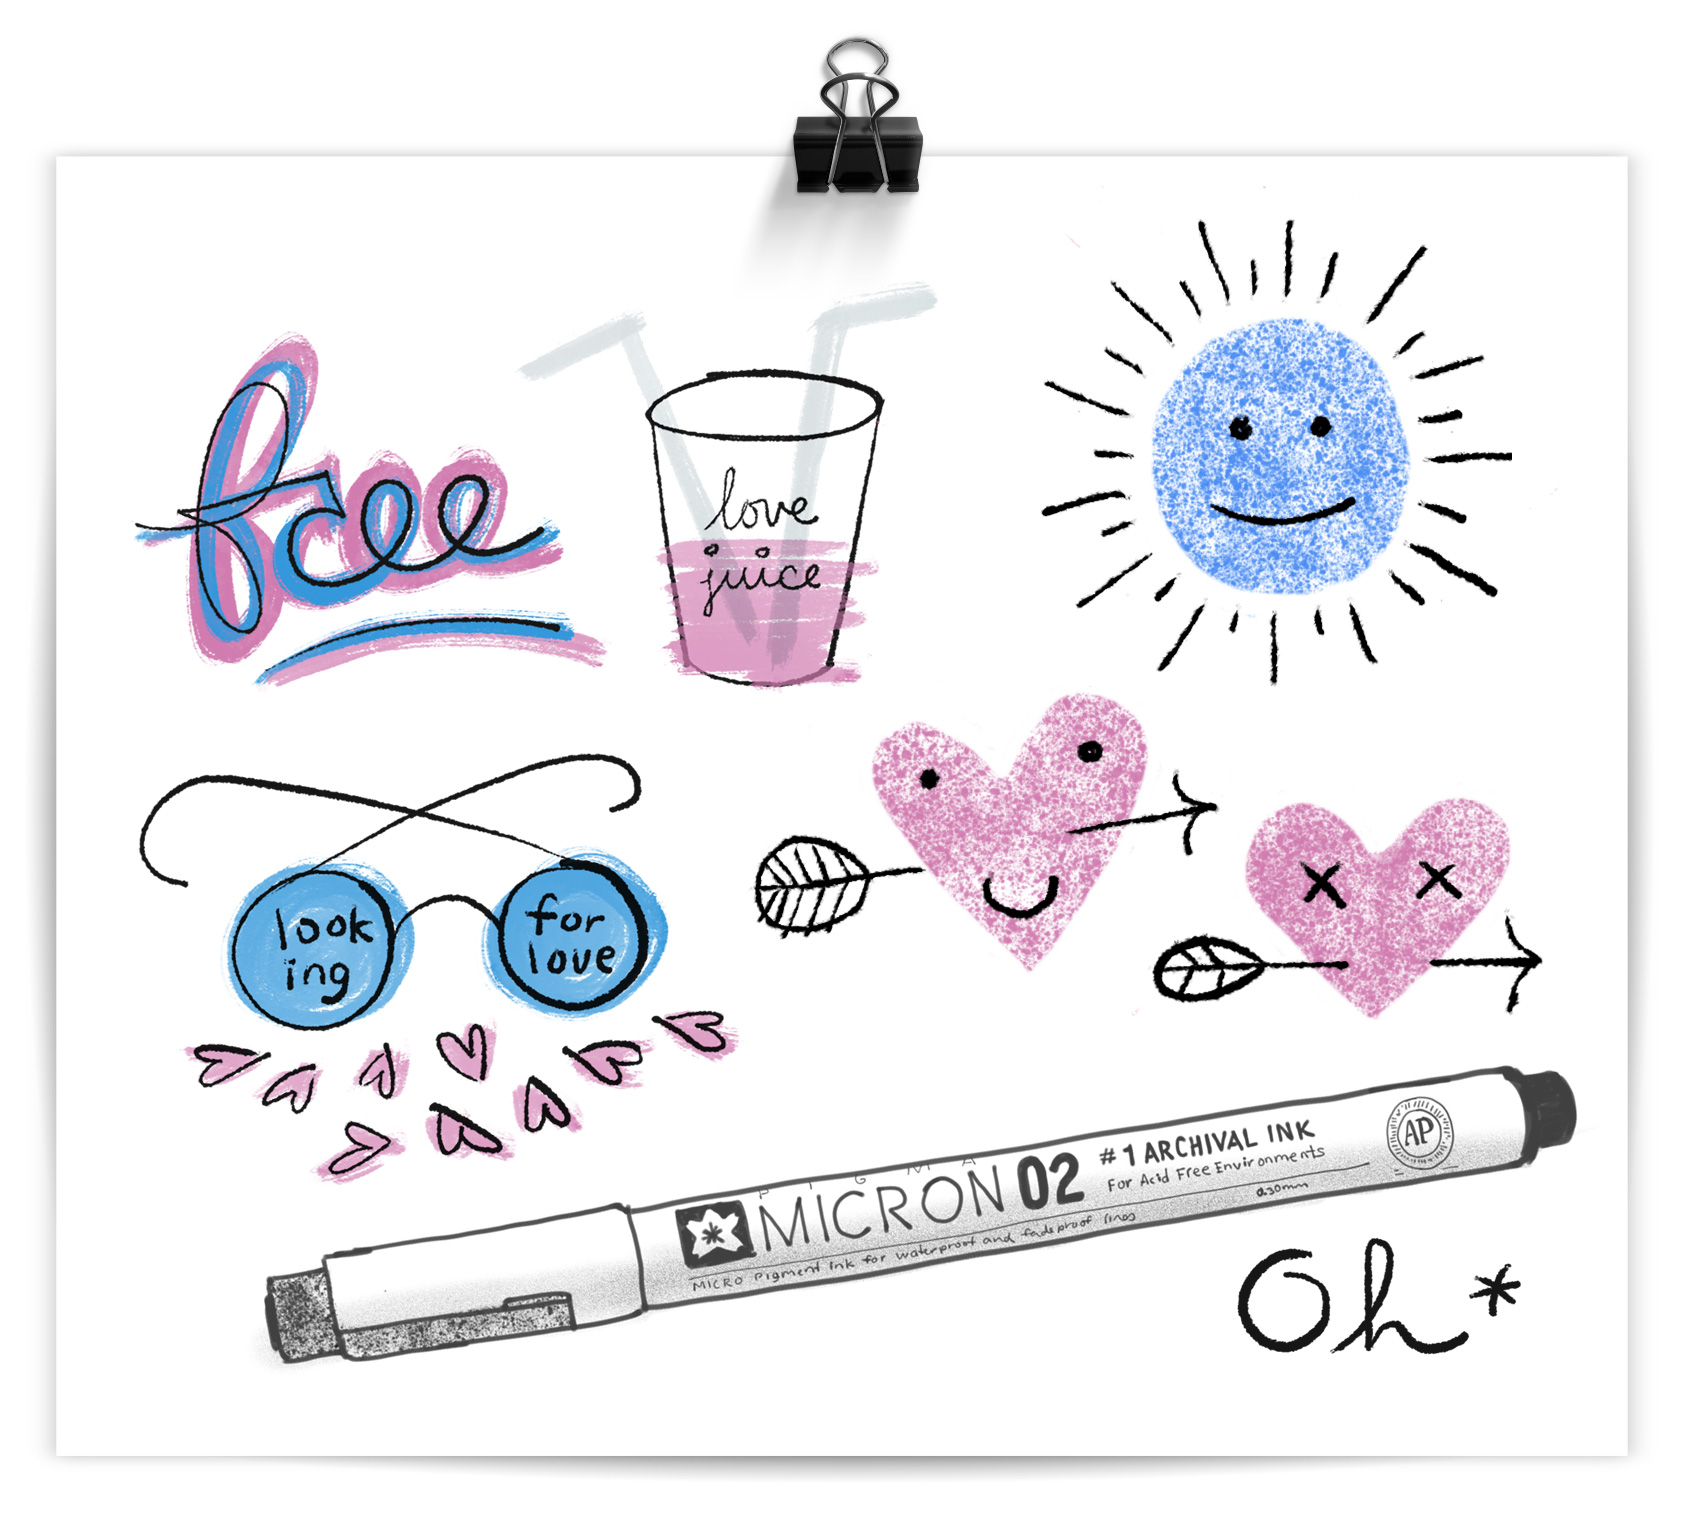 free typography, love juice cup, looking for love glasses, micron pen sketch